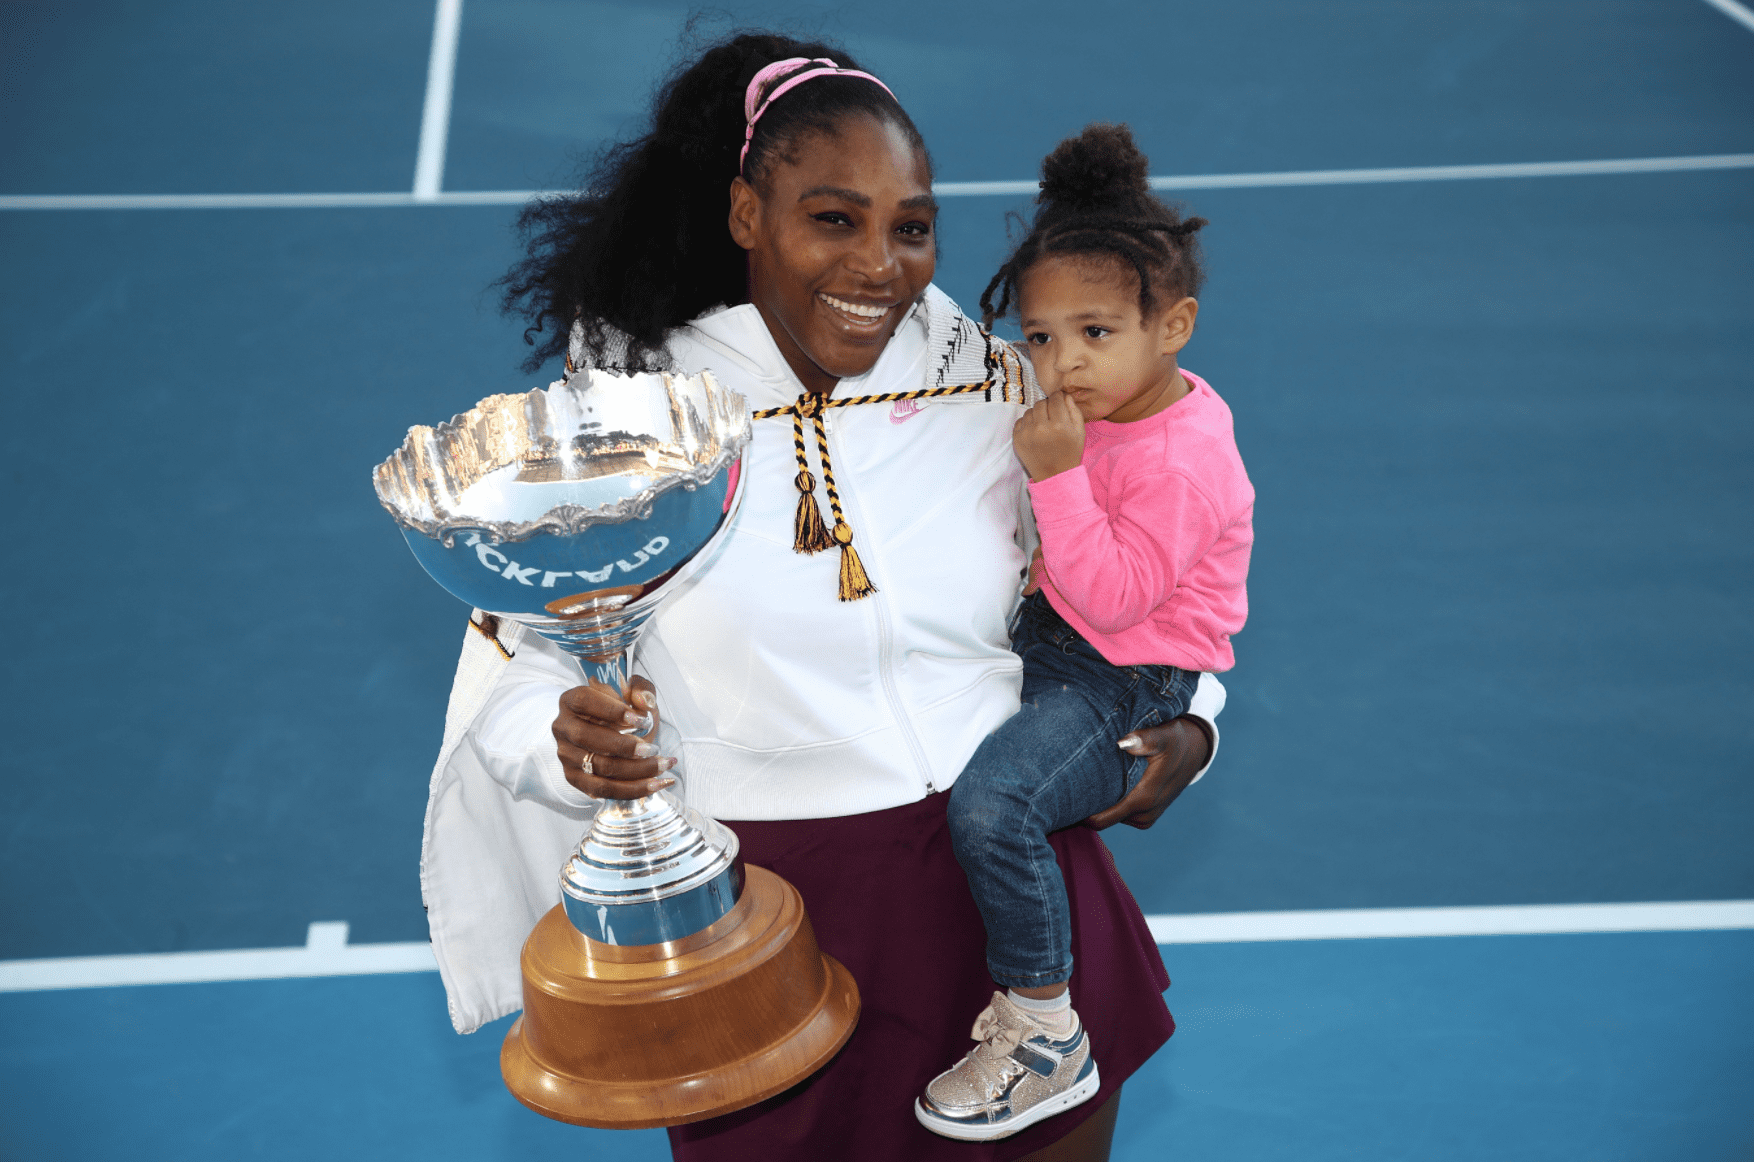 Serena Williams and her daughter Alexis Olympia at ASB Tennis Centre, 2020 in New Zealand. | Source: Getty Images